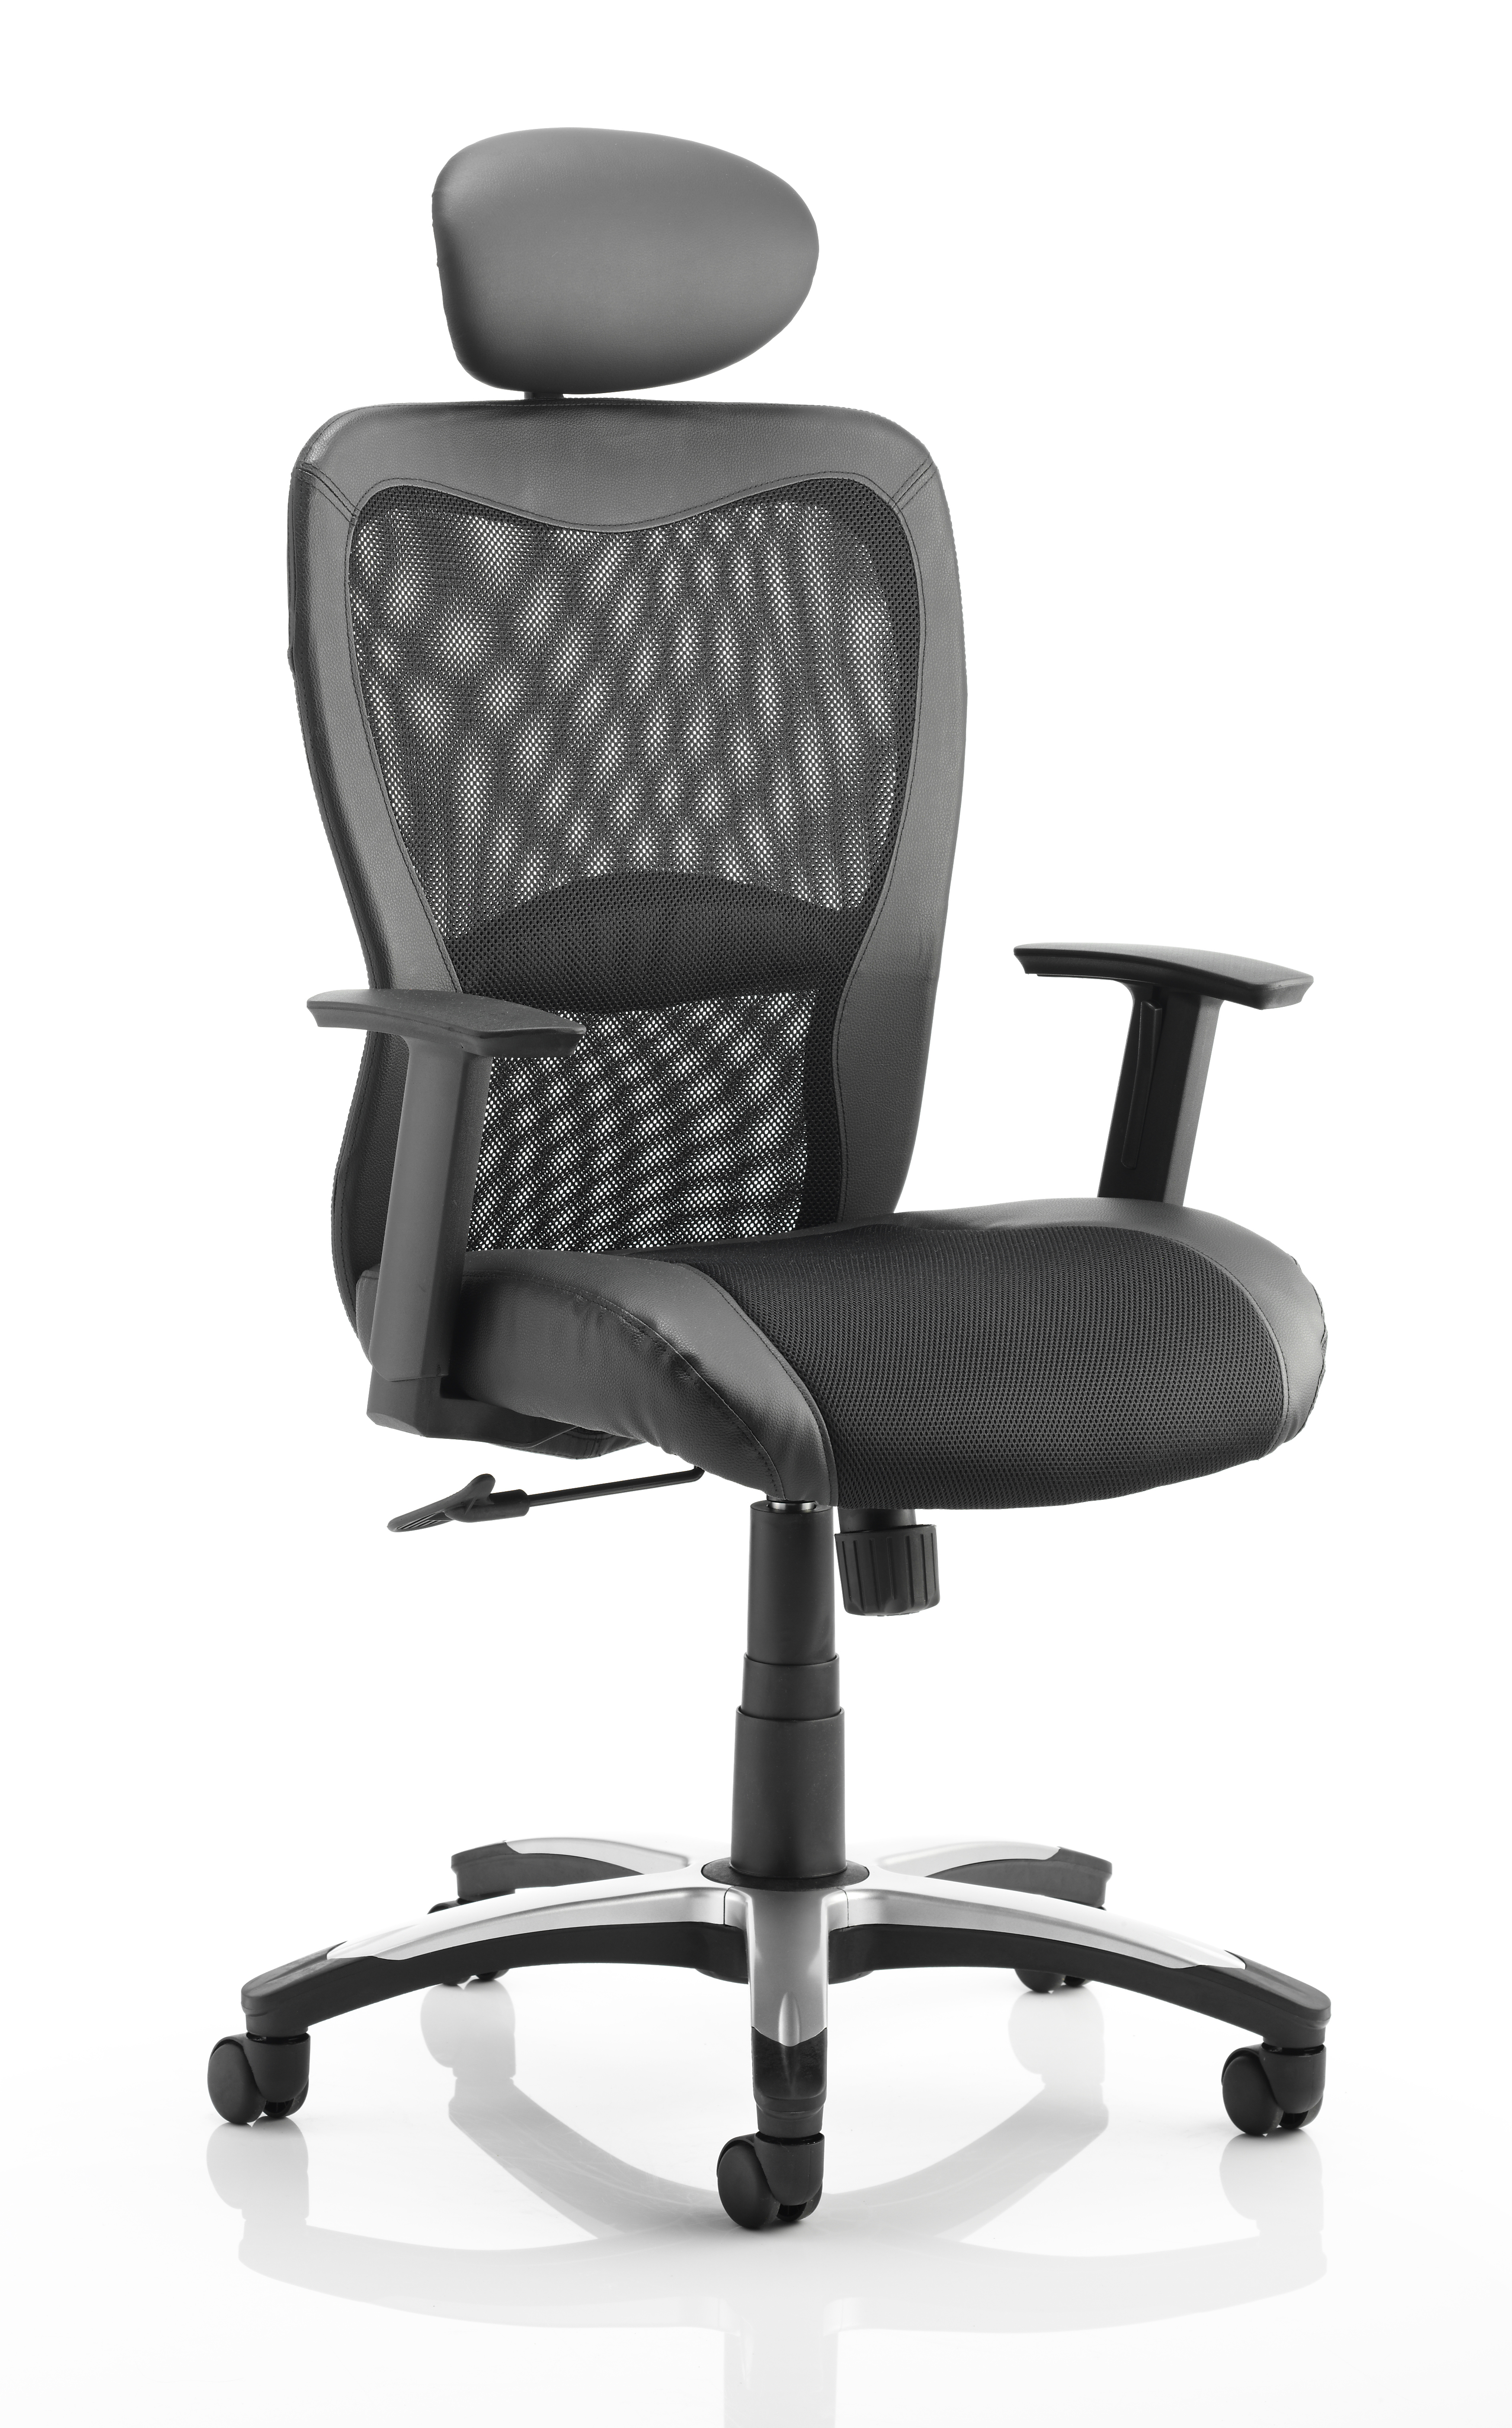 Executive Chairs Victor II Executive Chair Black With Headrest KC0160